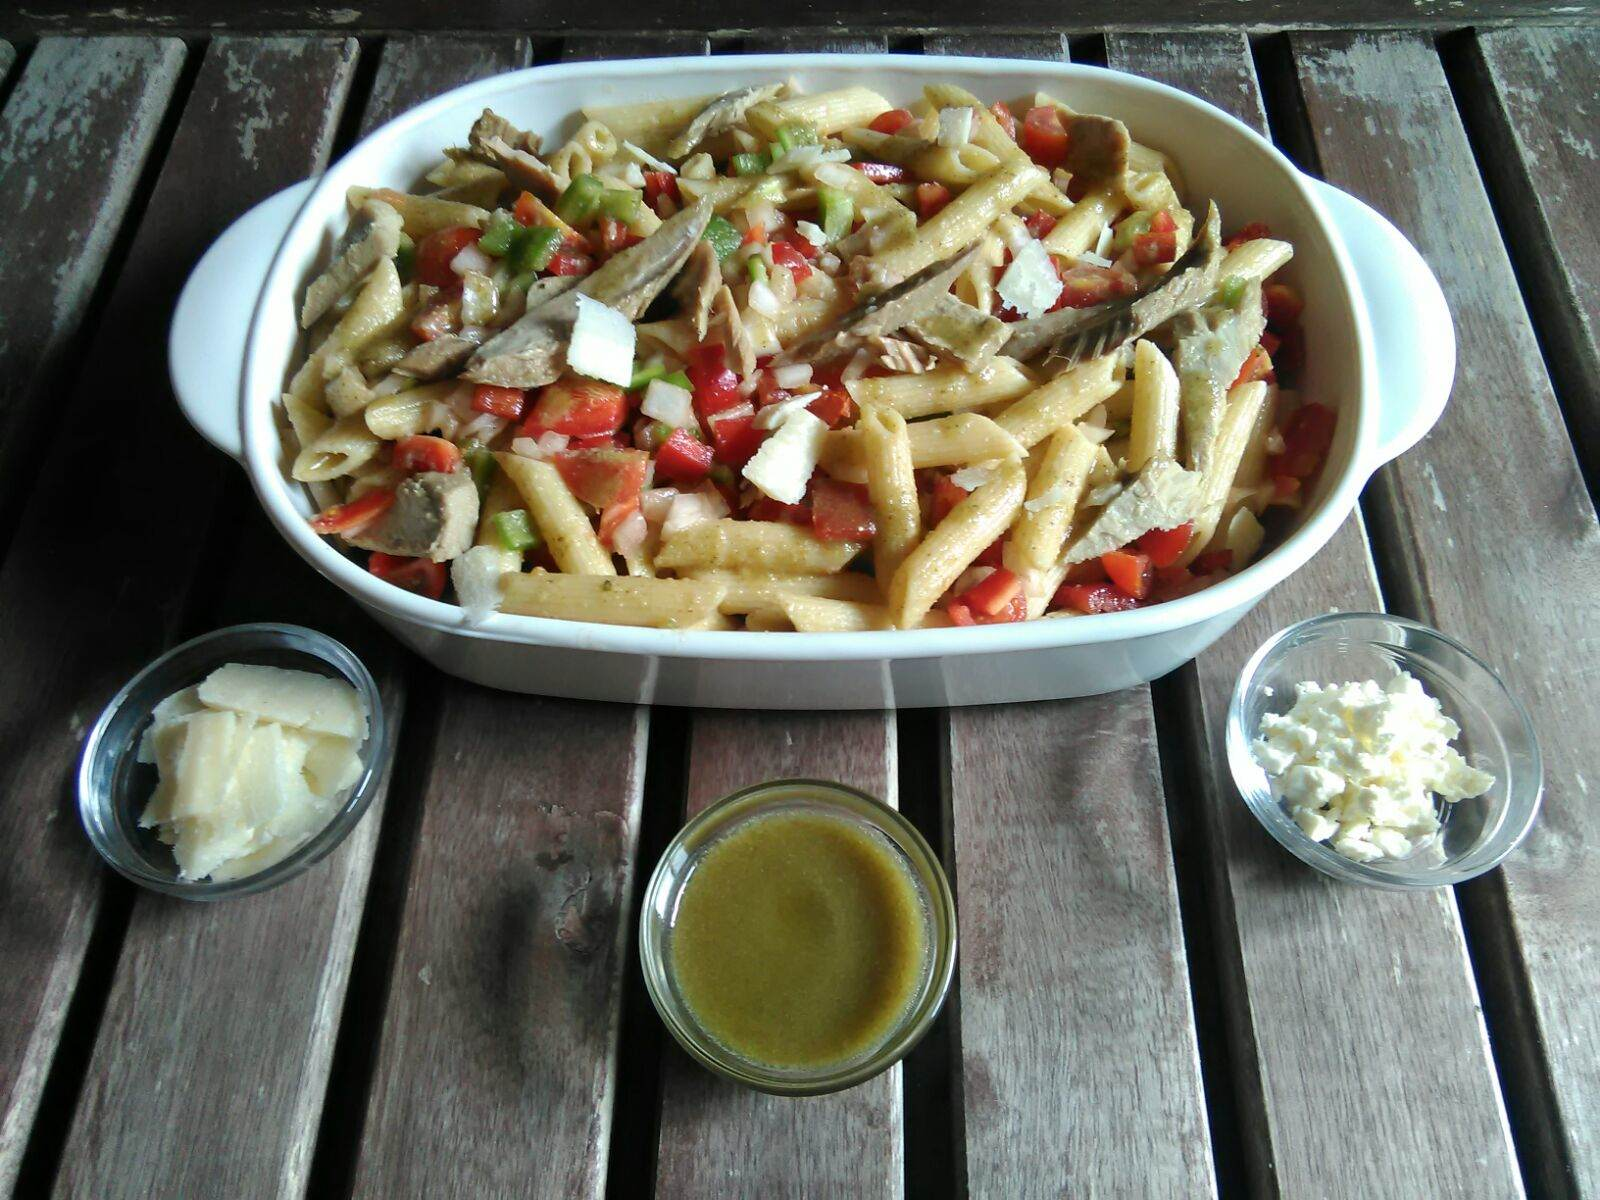 Pasta salad with tuna belly